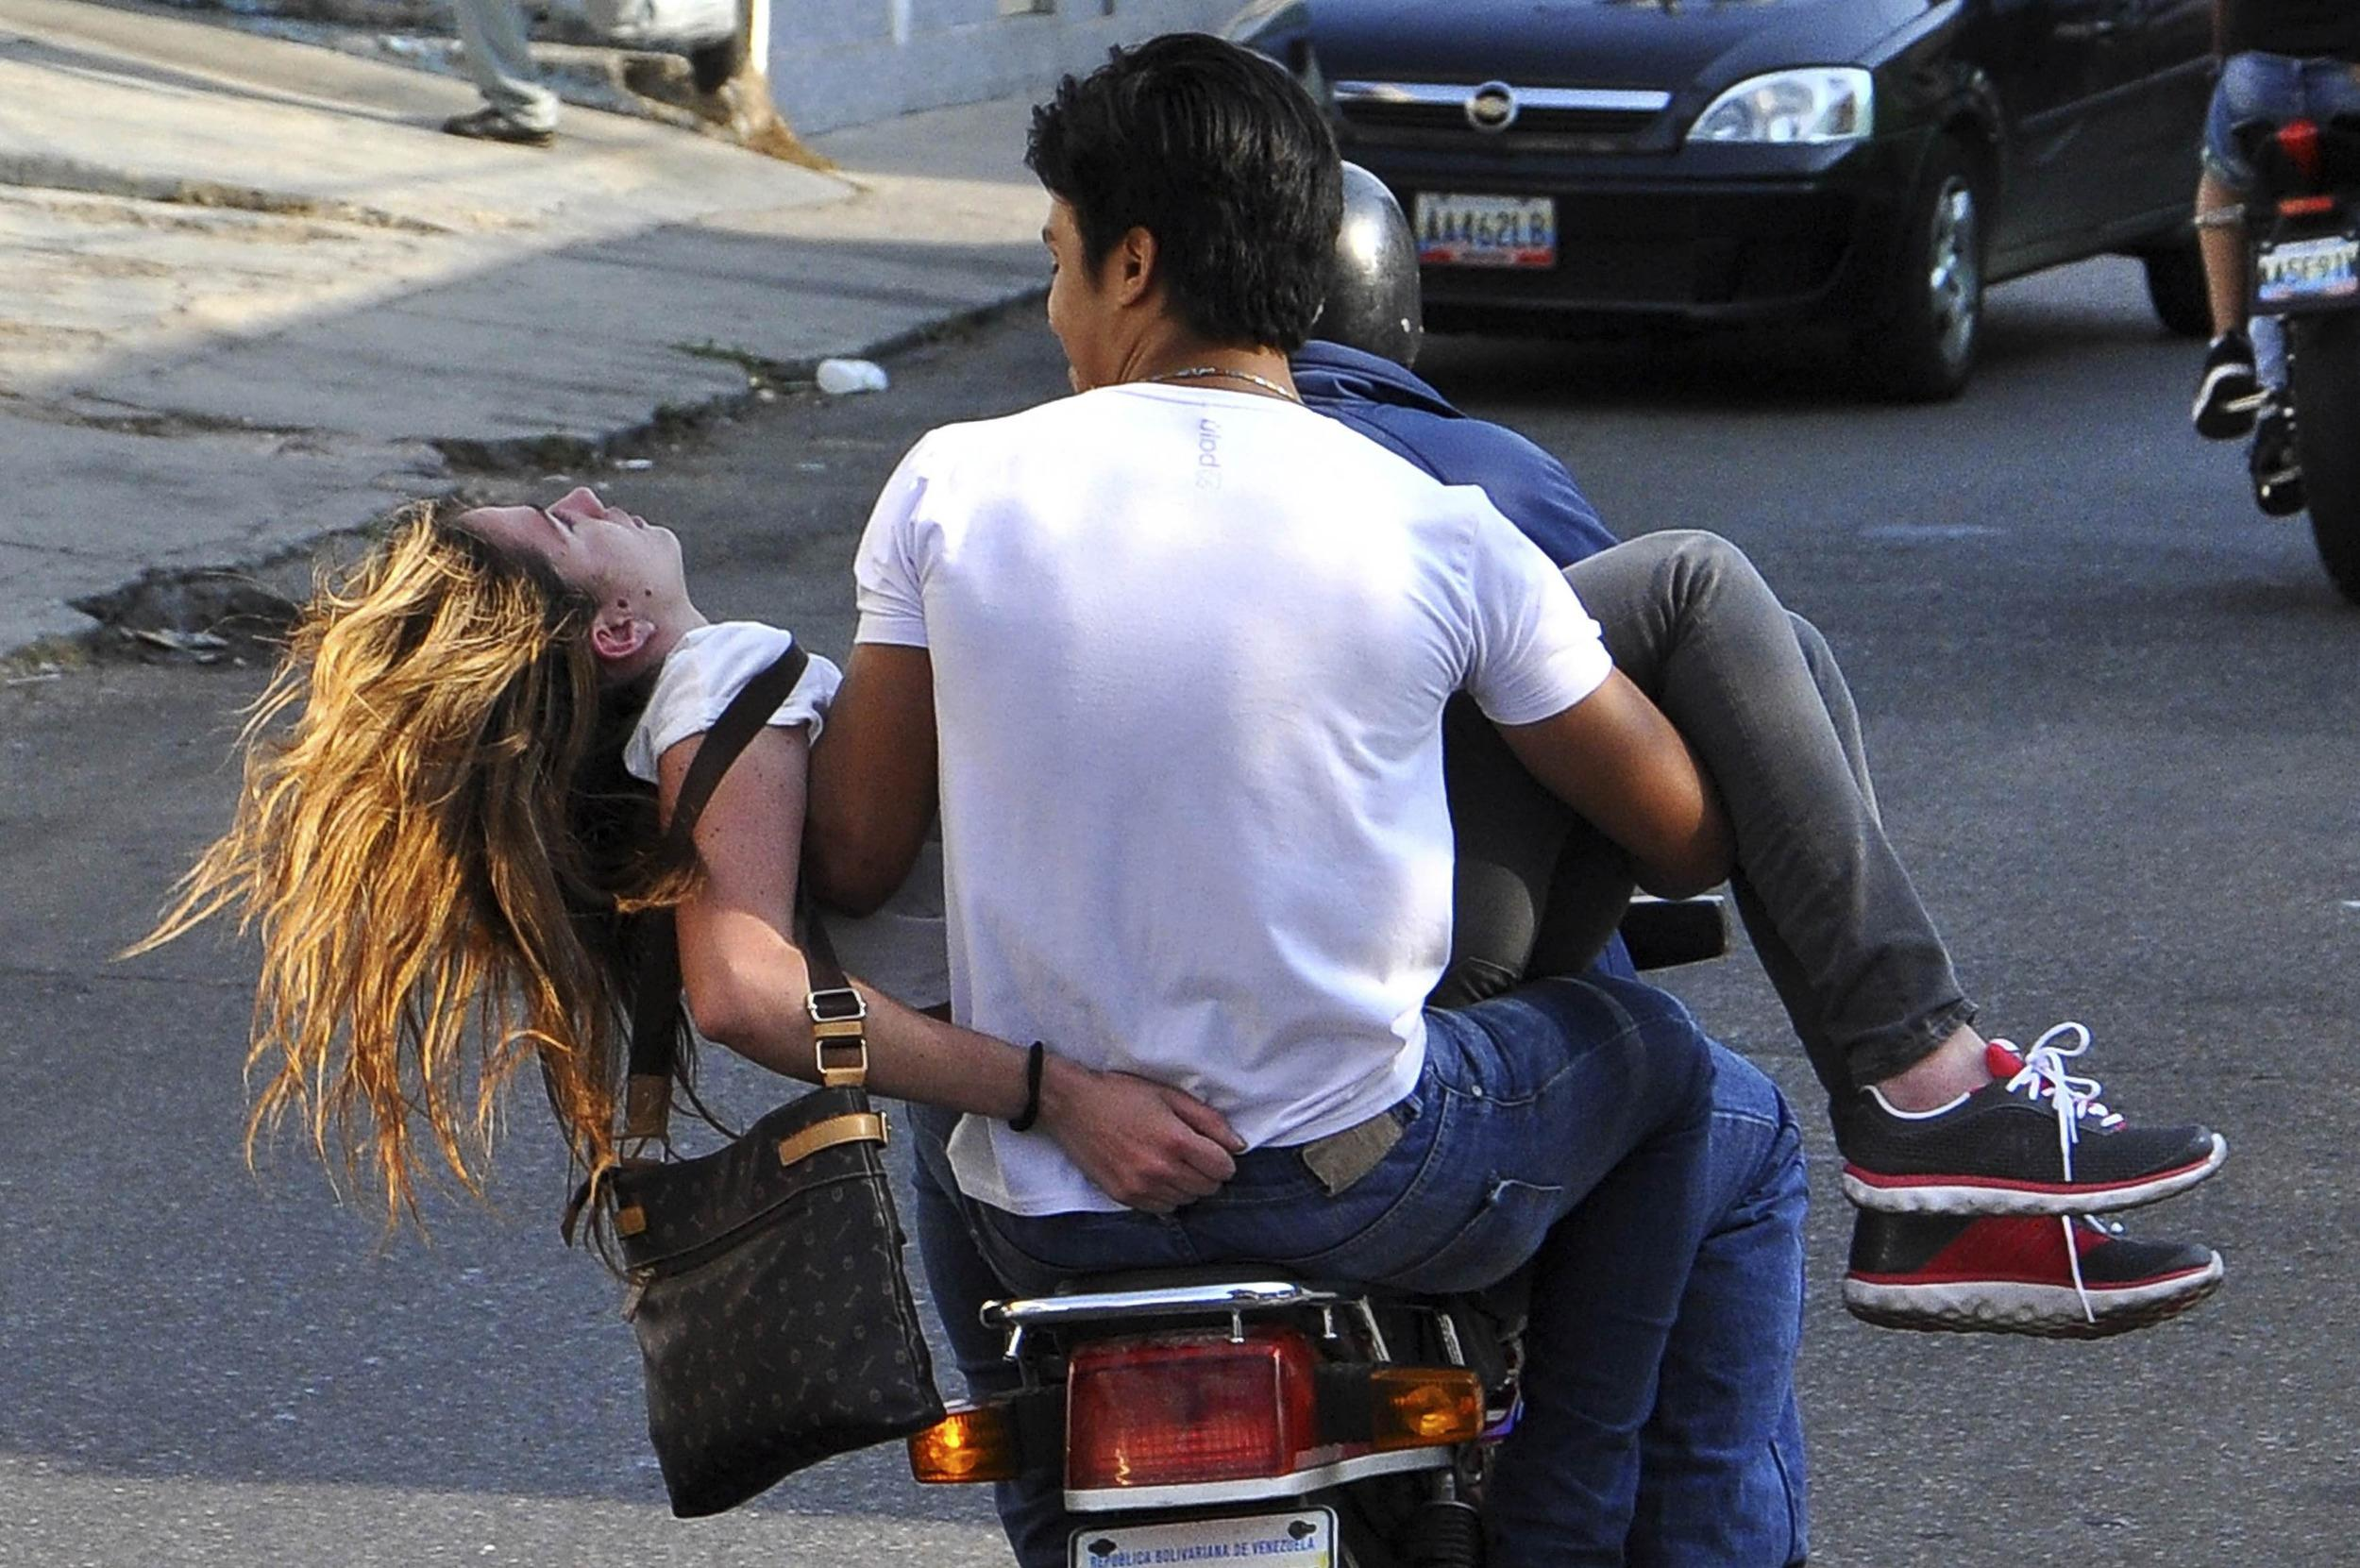 ... shot in the head during a protest against Nicolas Maduro's government: http://www.nbcnews.com/storyline/venezuela-crisis/venezuelan-beauty-queen-dies-injuries-following-protests-n33756